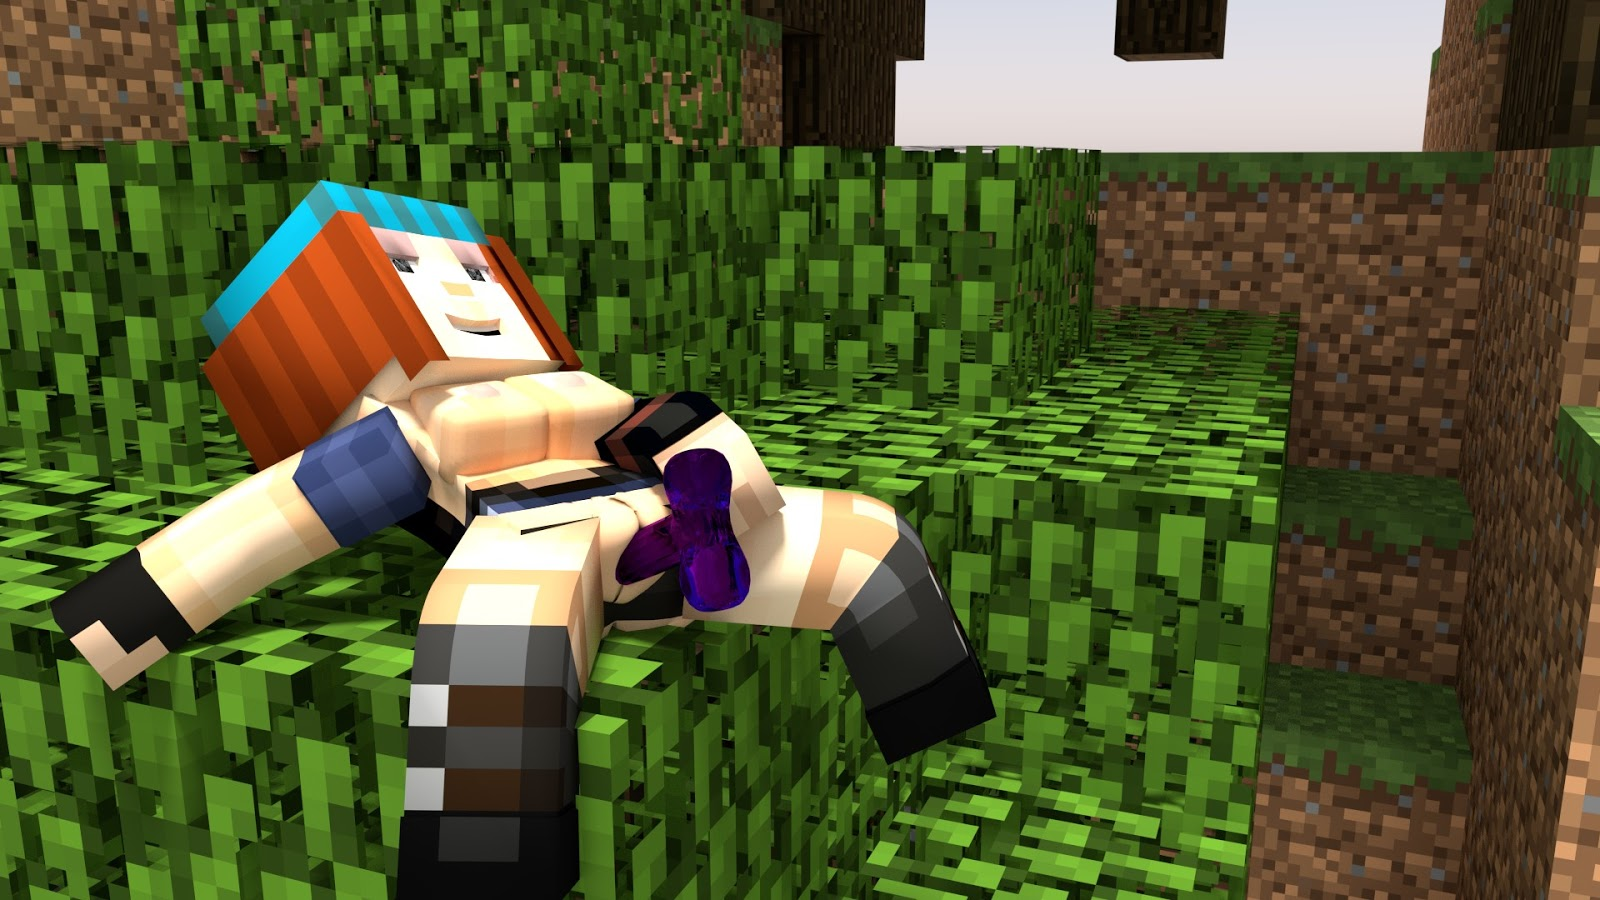 The scene sexy minecraft porn don't just